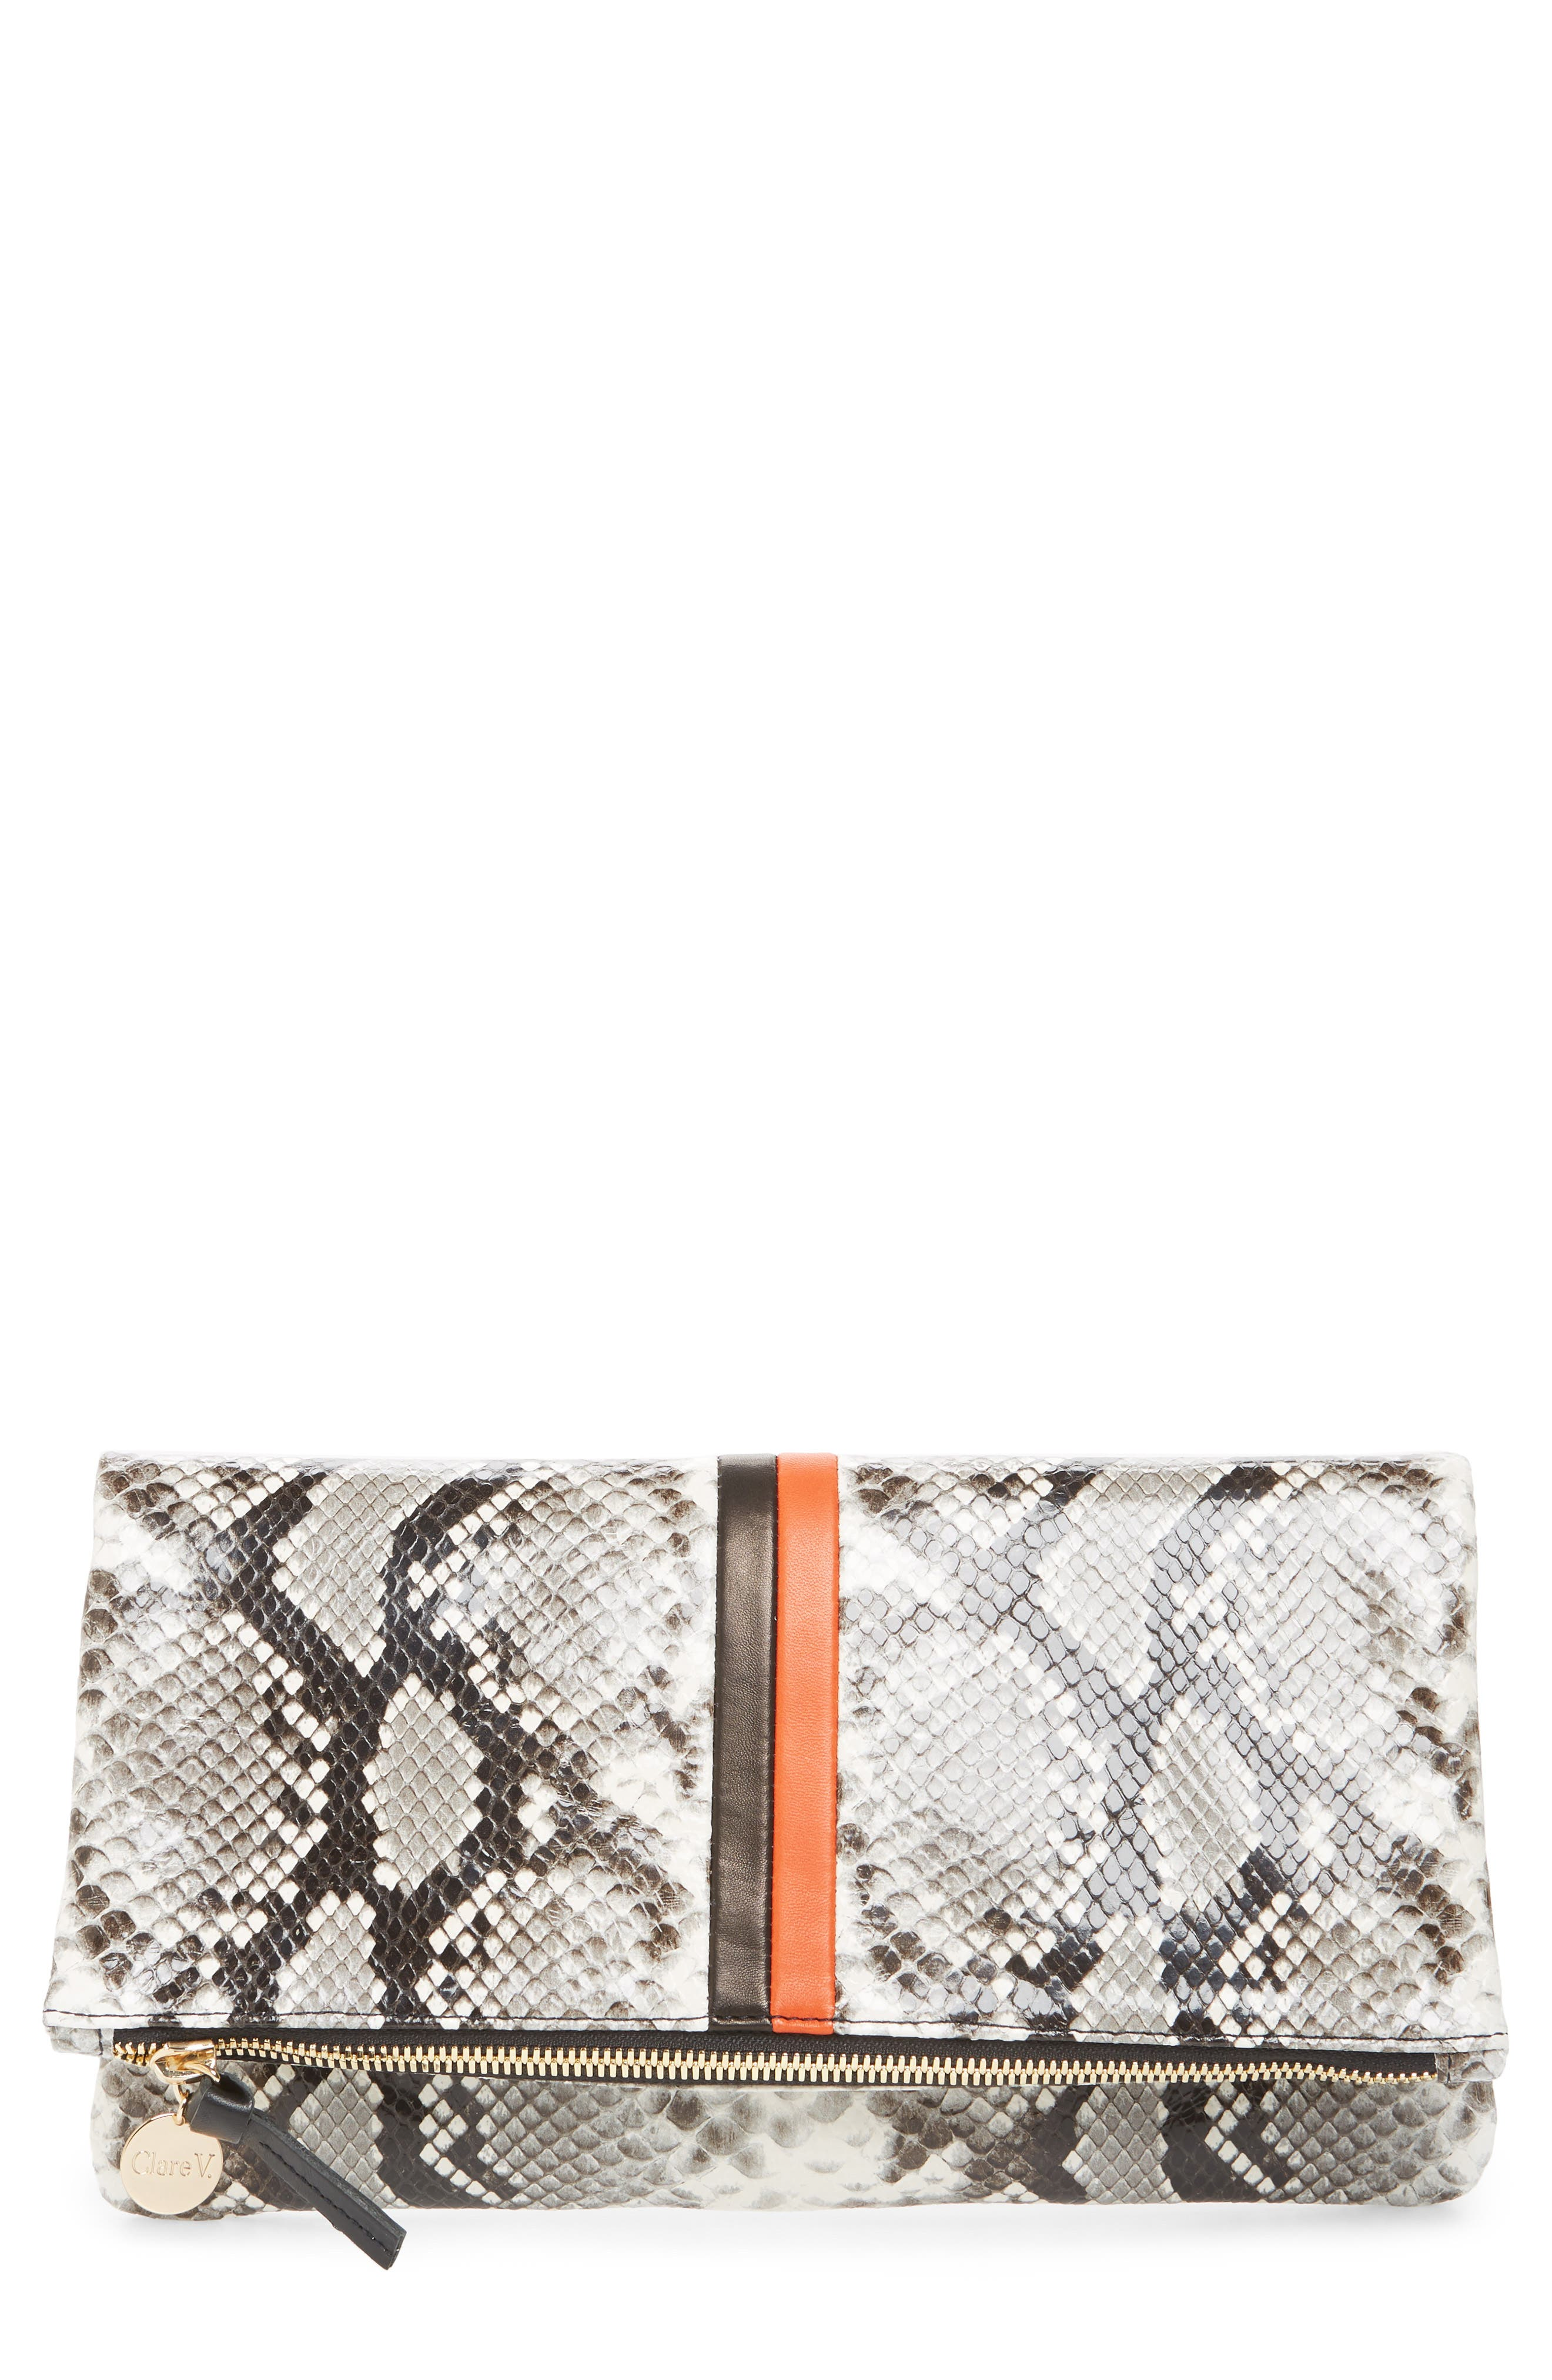 Python Embossed Leather Foldover Clutch,                         Main,                         color, BLACK PYTHON WITH STRIPES